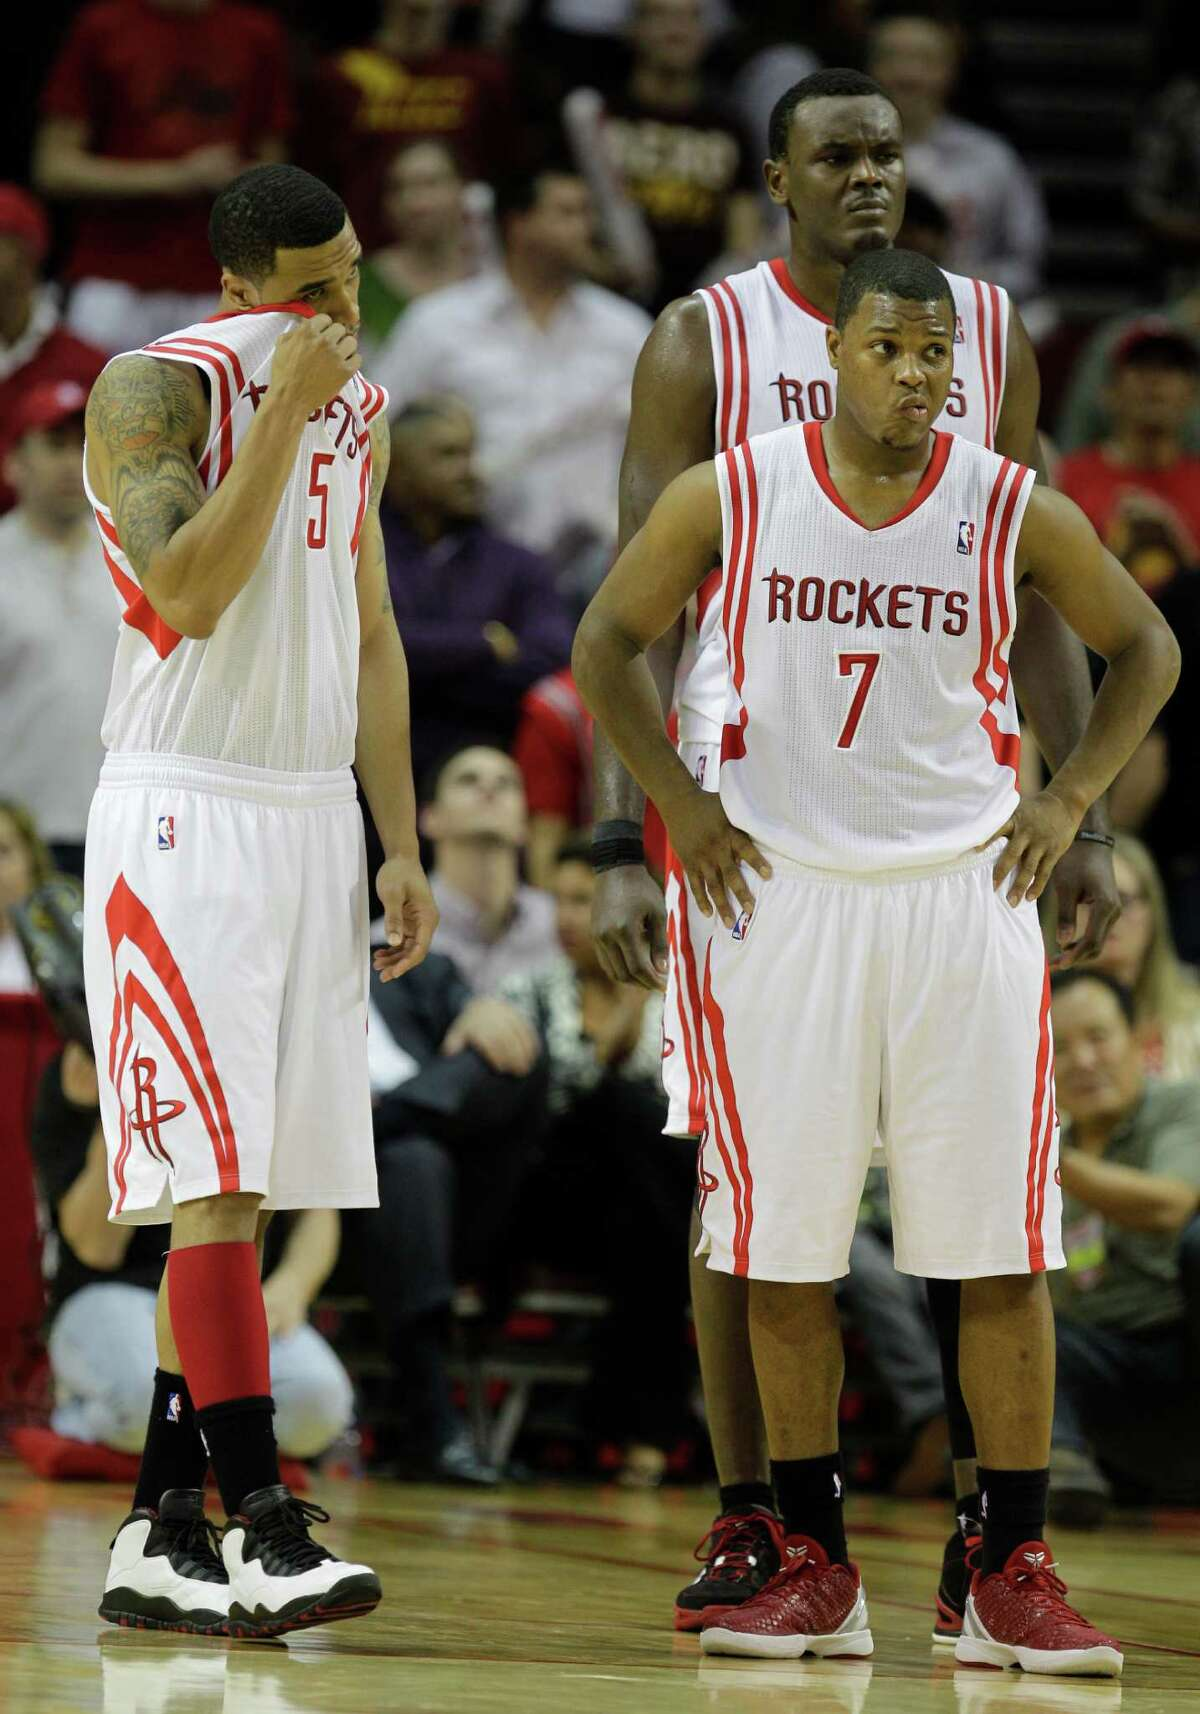 Houston Rockets' Courtney Lee, left, Kyle Lowry, right, and Samuel Dalembert, back right, show their reactions as the team is forced into overtime against New Orleans Hornets' during NBA game at Toyota Center Thursday, Jan. 19, 2012, in Houston. ( Melissa Phillip / Houston Chronicle )